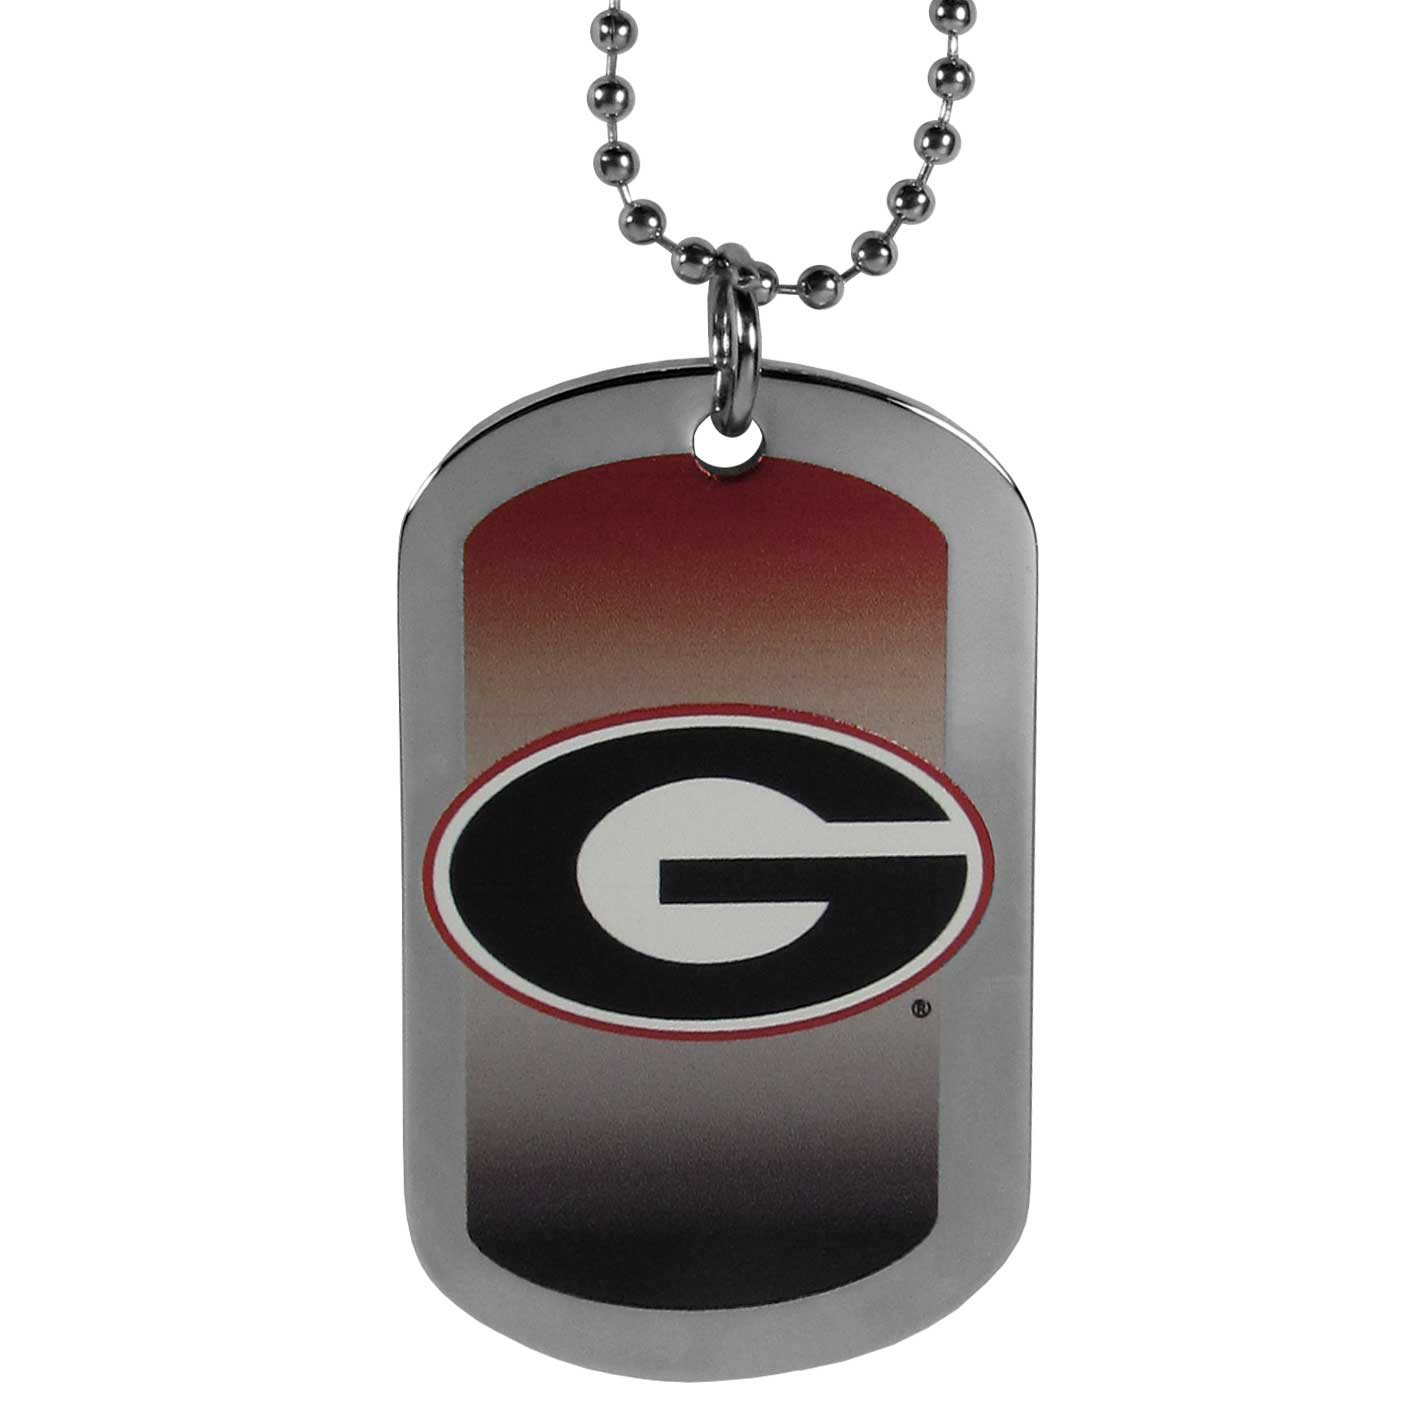 Georgia Bulldogs Team Tag Necklace - Dog tag necklaces are a fashion statement that is here to stay. The sporty version of the classic tag features a gradient print in team colors featuring a full color team logo over a high polish tag to create a bold and sporty look. The tag comes on a 26 inch ball chain with a ball and joint clasp. Any Georgia Bulldogs would be proud to wear this attractive fashion accessory.